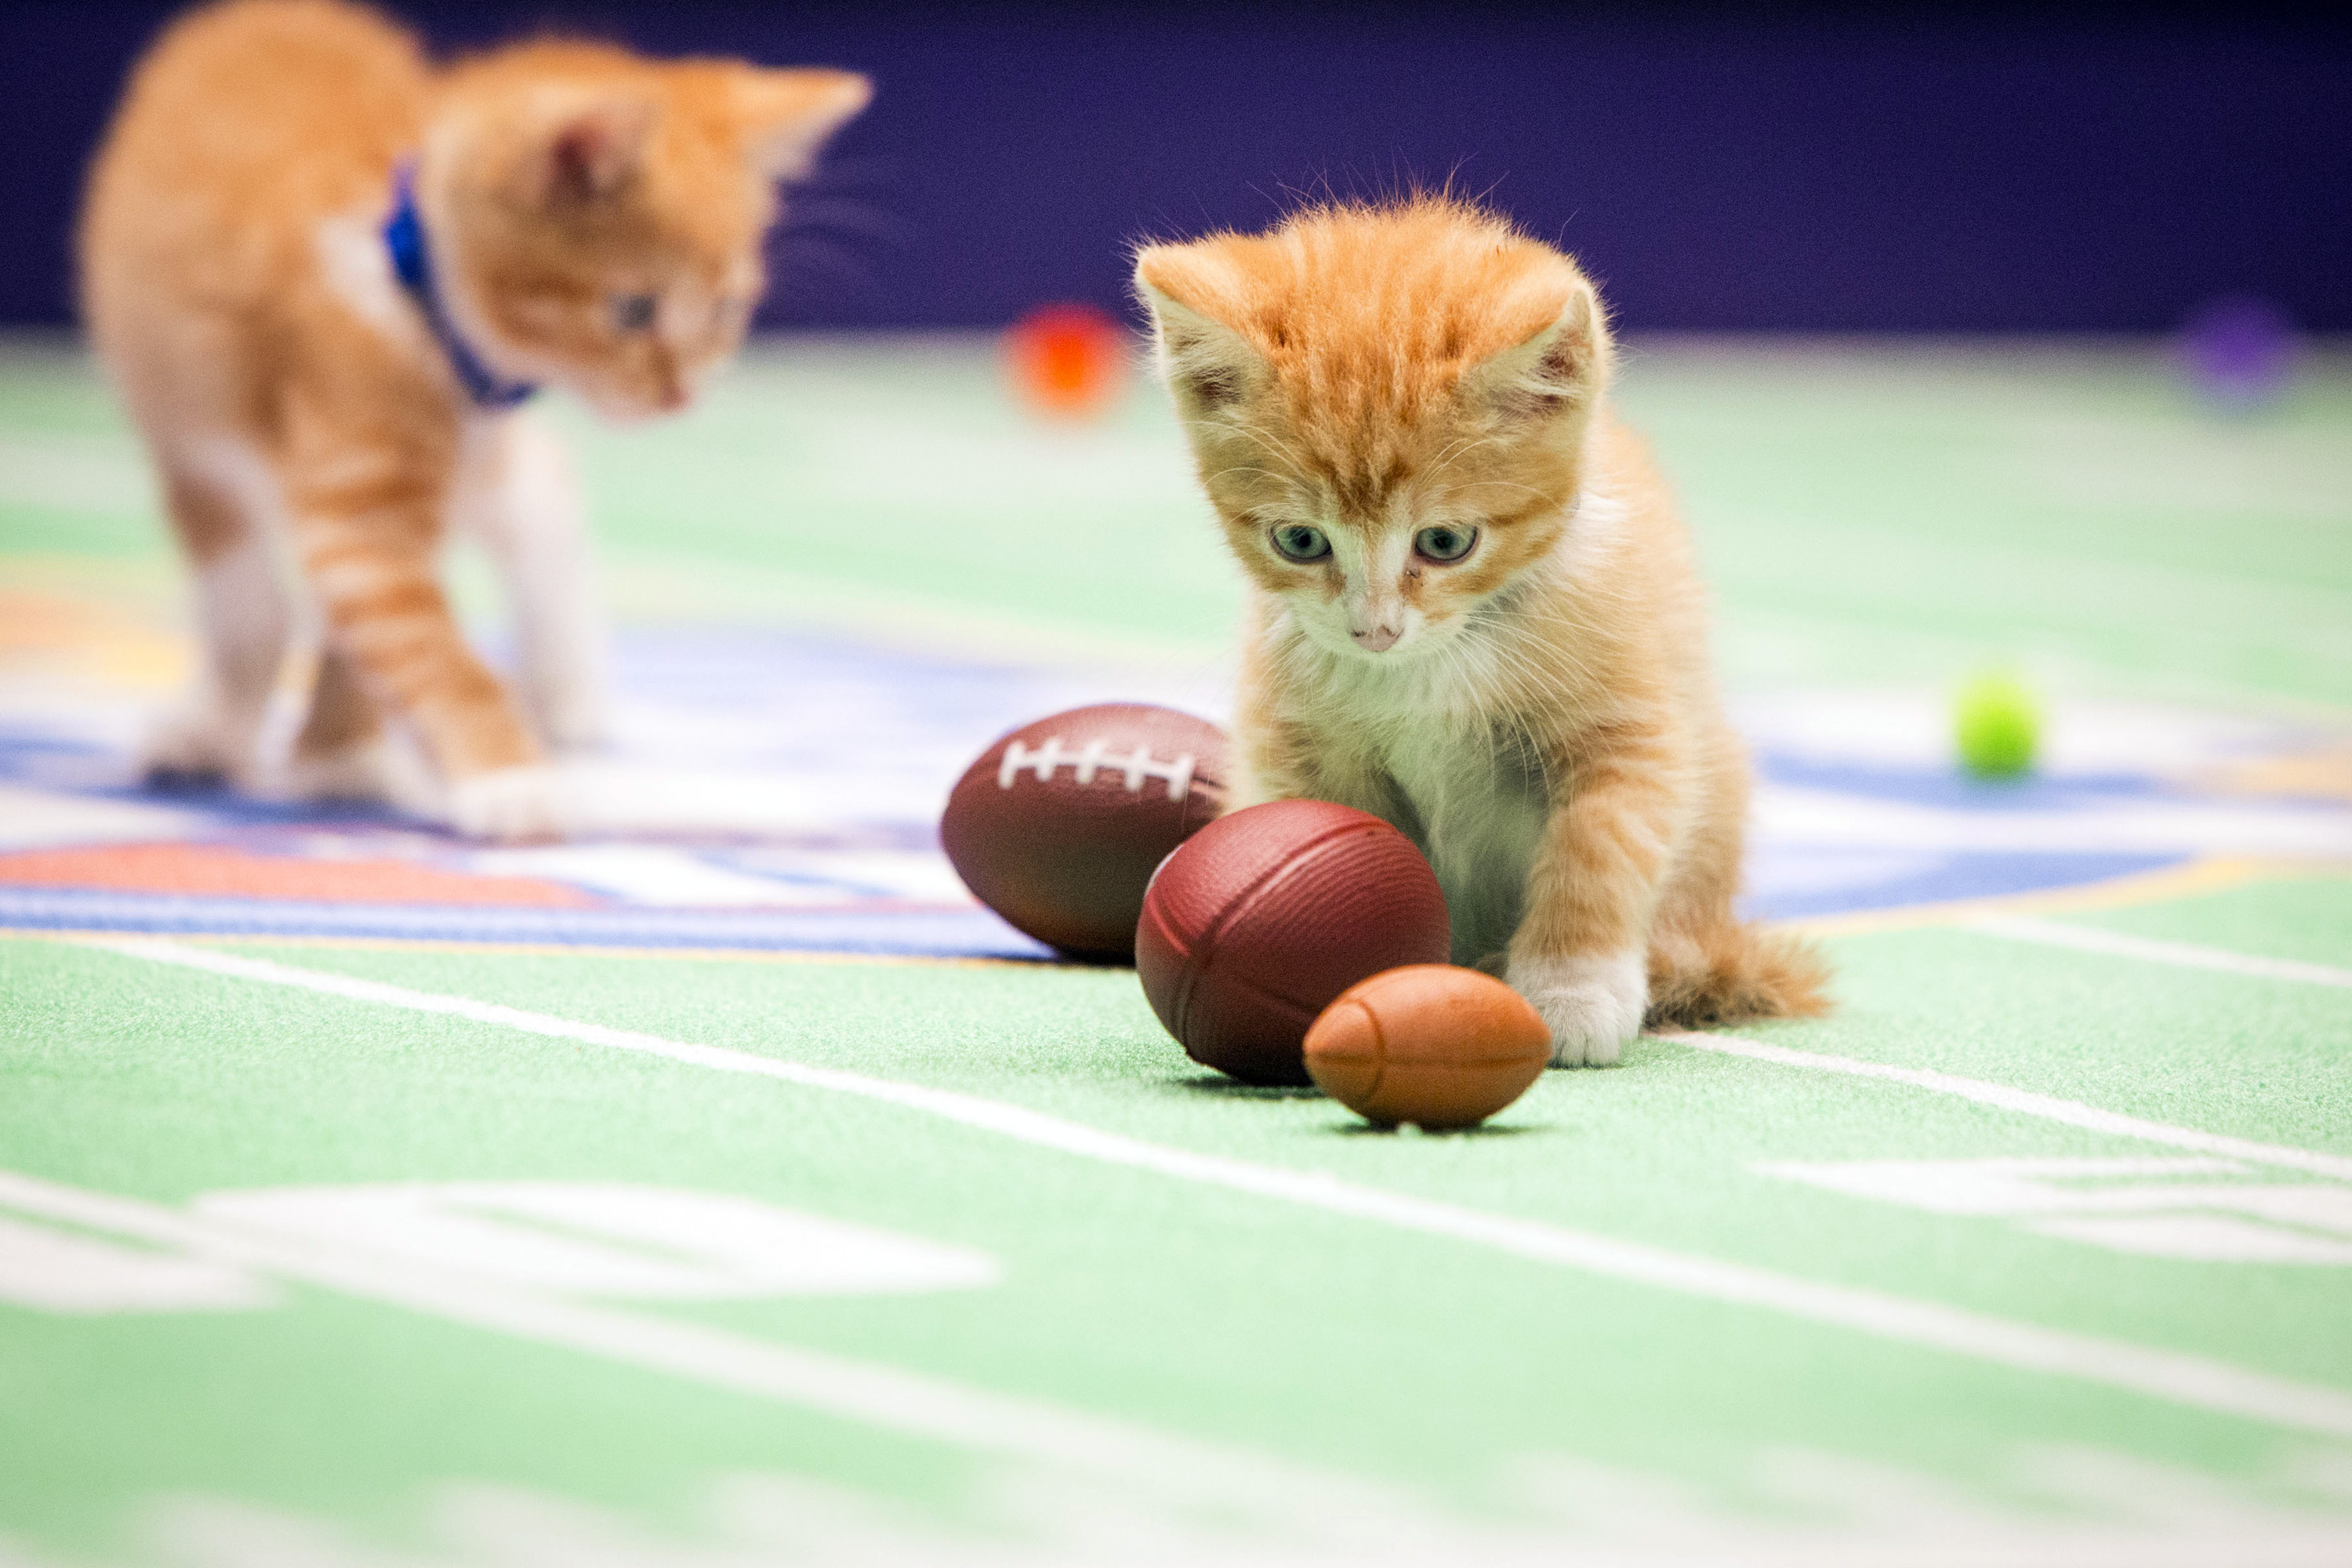 The claws e out when felines take the field in Kitten Bowl II